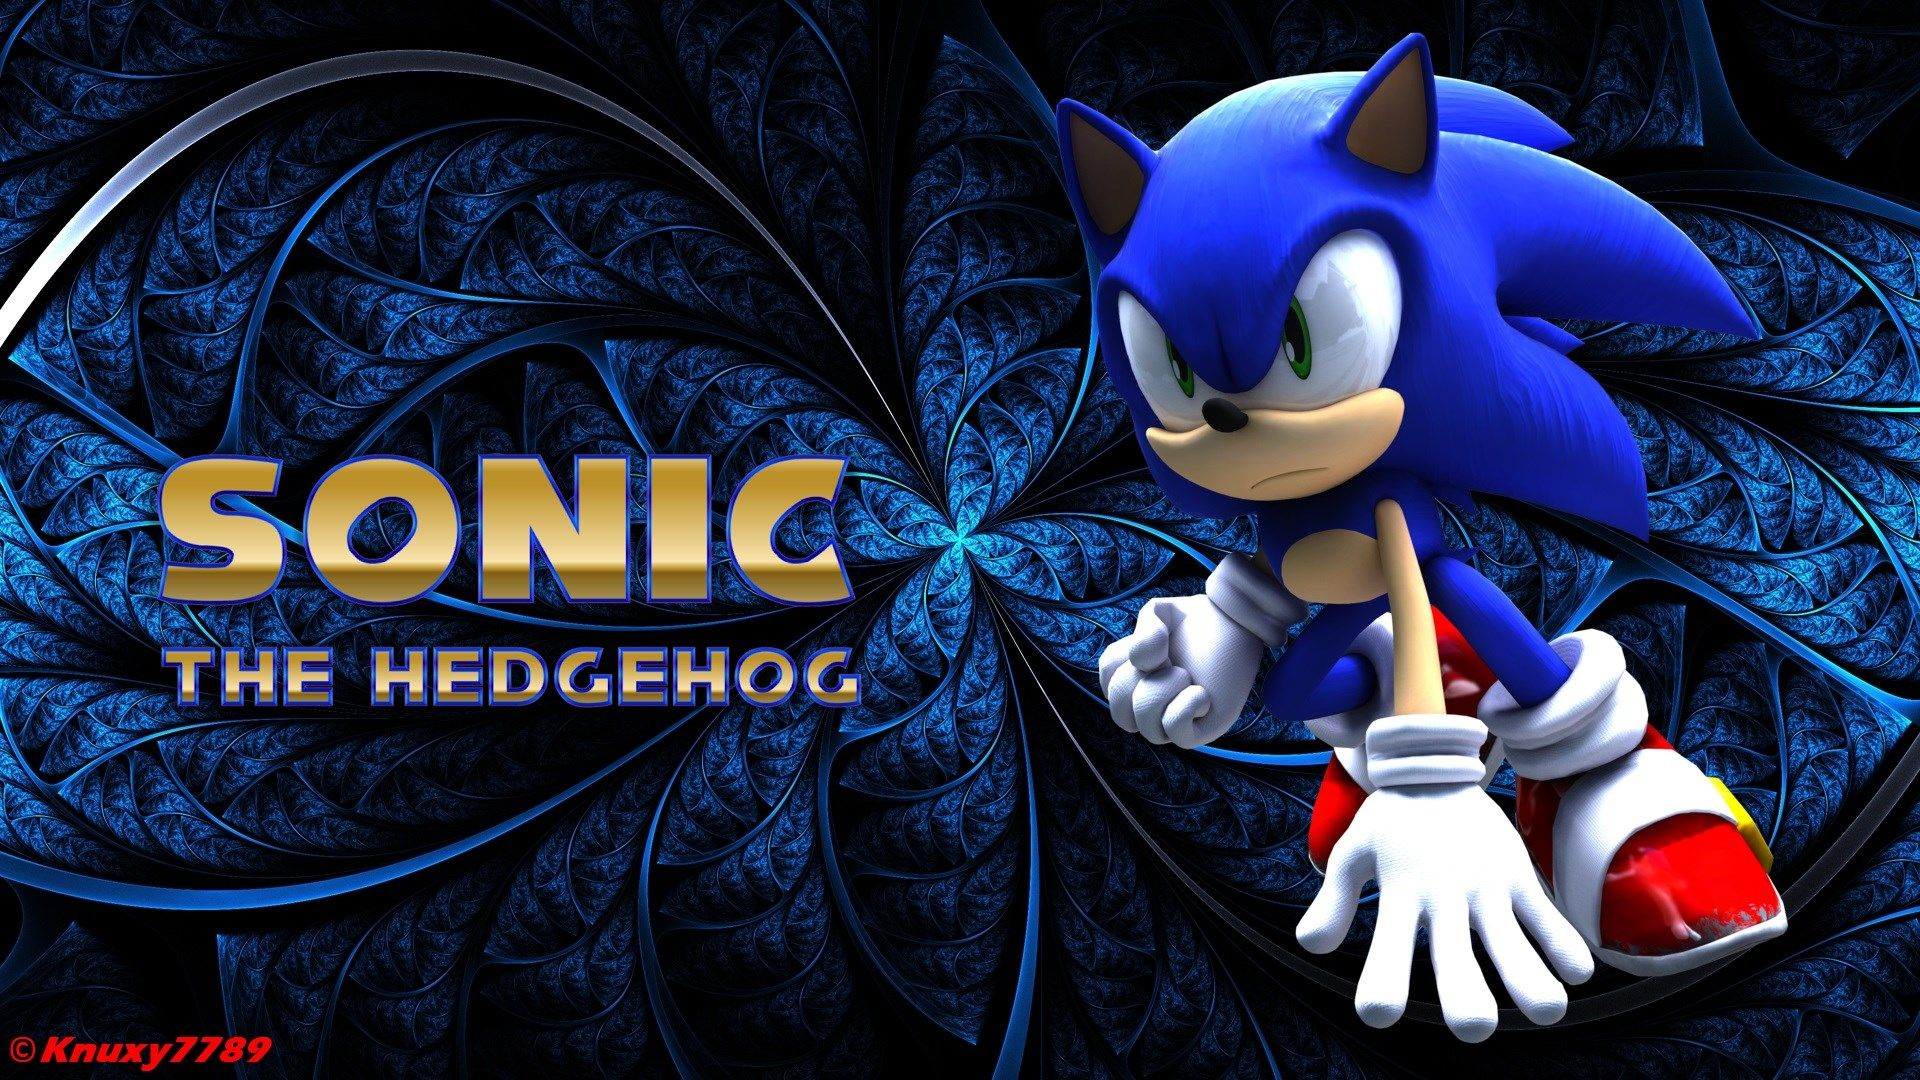 Sonic the Hedgehog Wallpapers by LightRock on